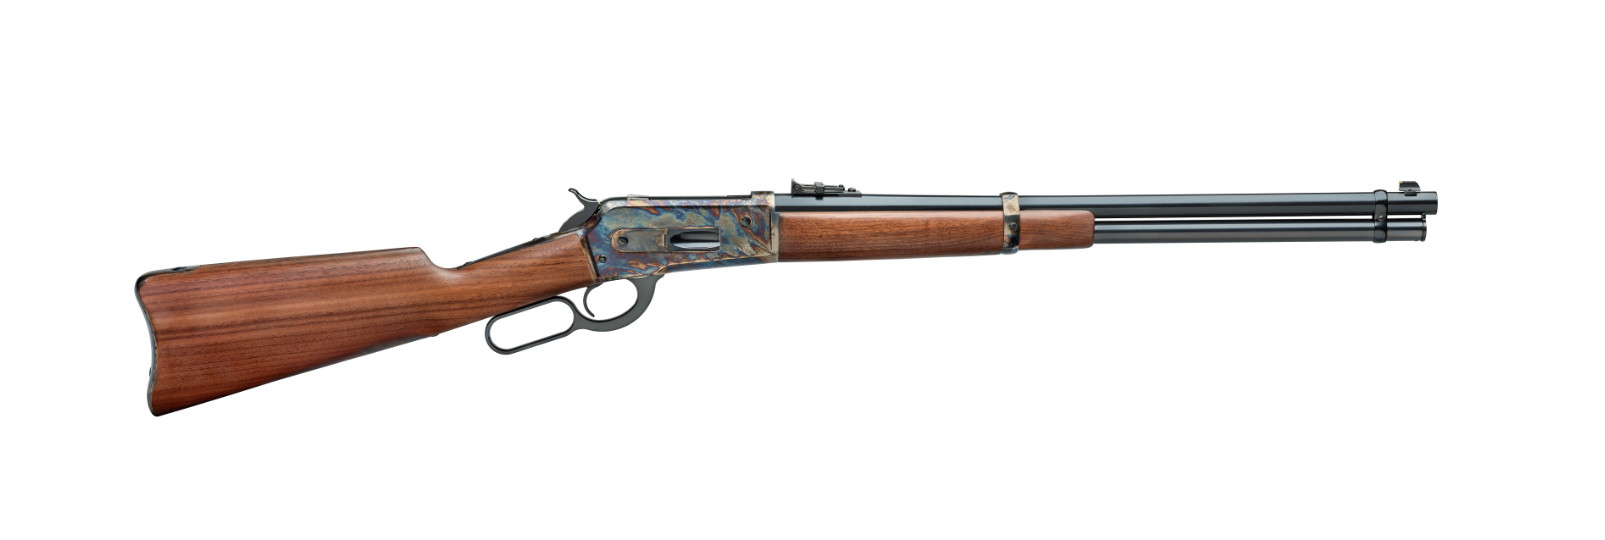 1886 Lever Action Carabina 20""